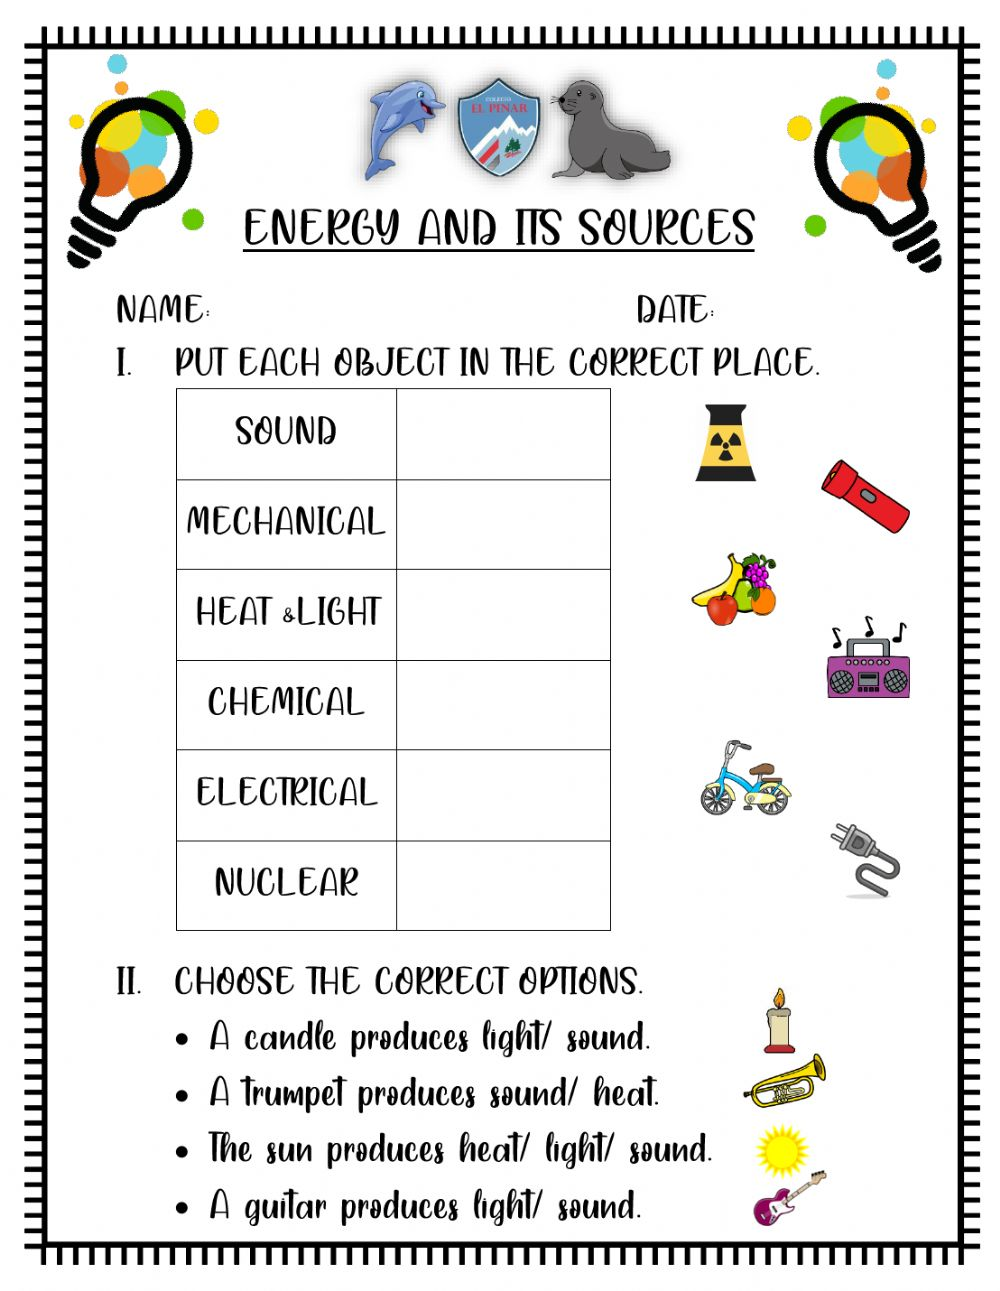 hight resolution of Energy and its sources worksheet